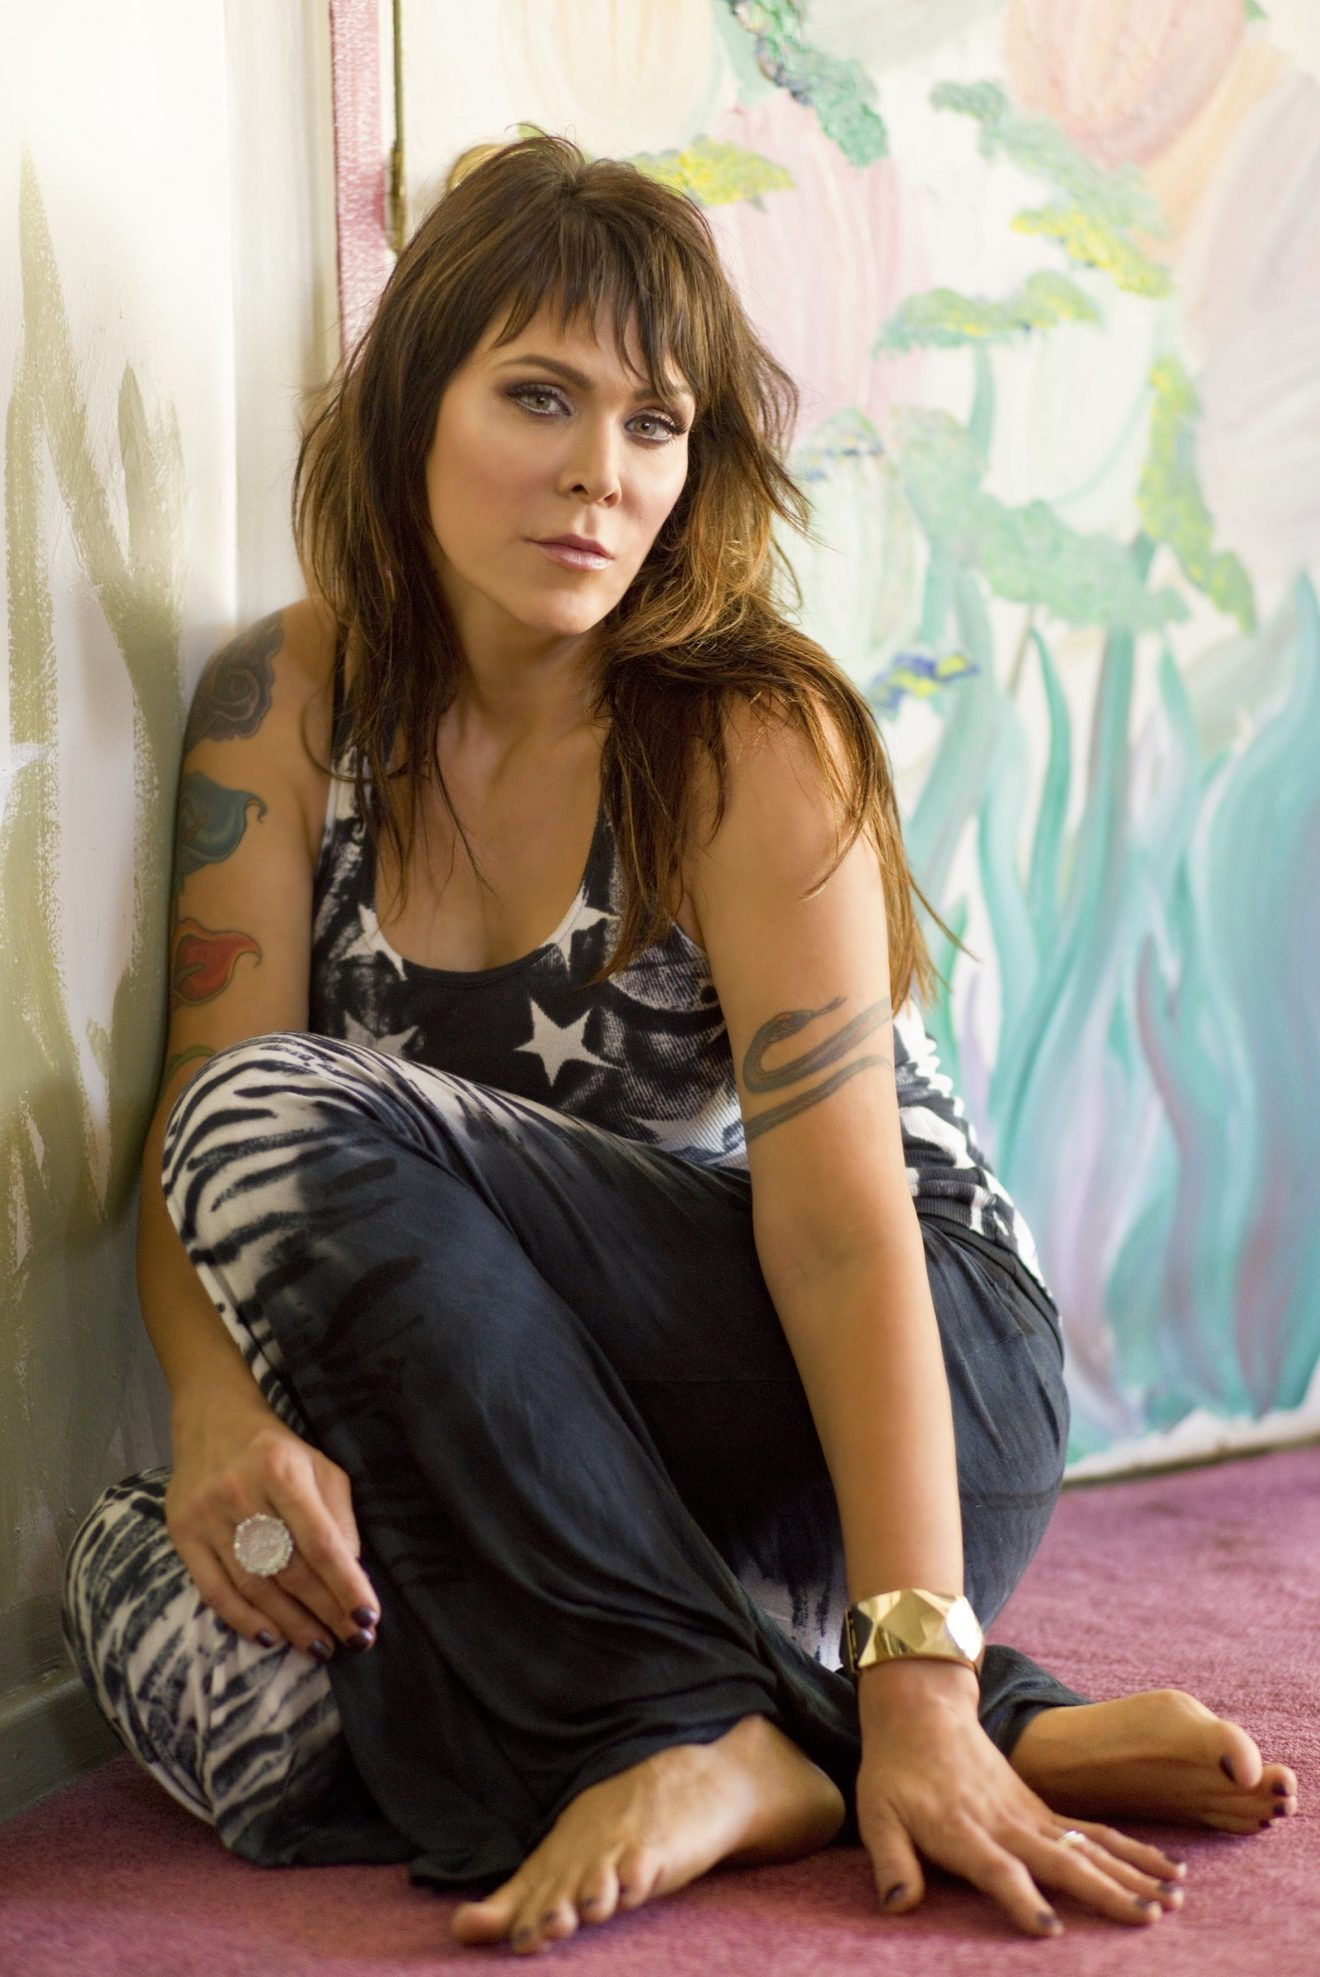 Interview with Beth Hart by Boomerocity.com   Beth Hart